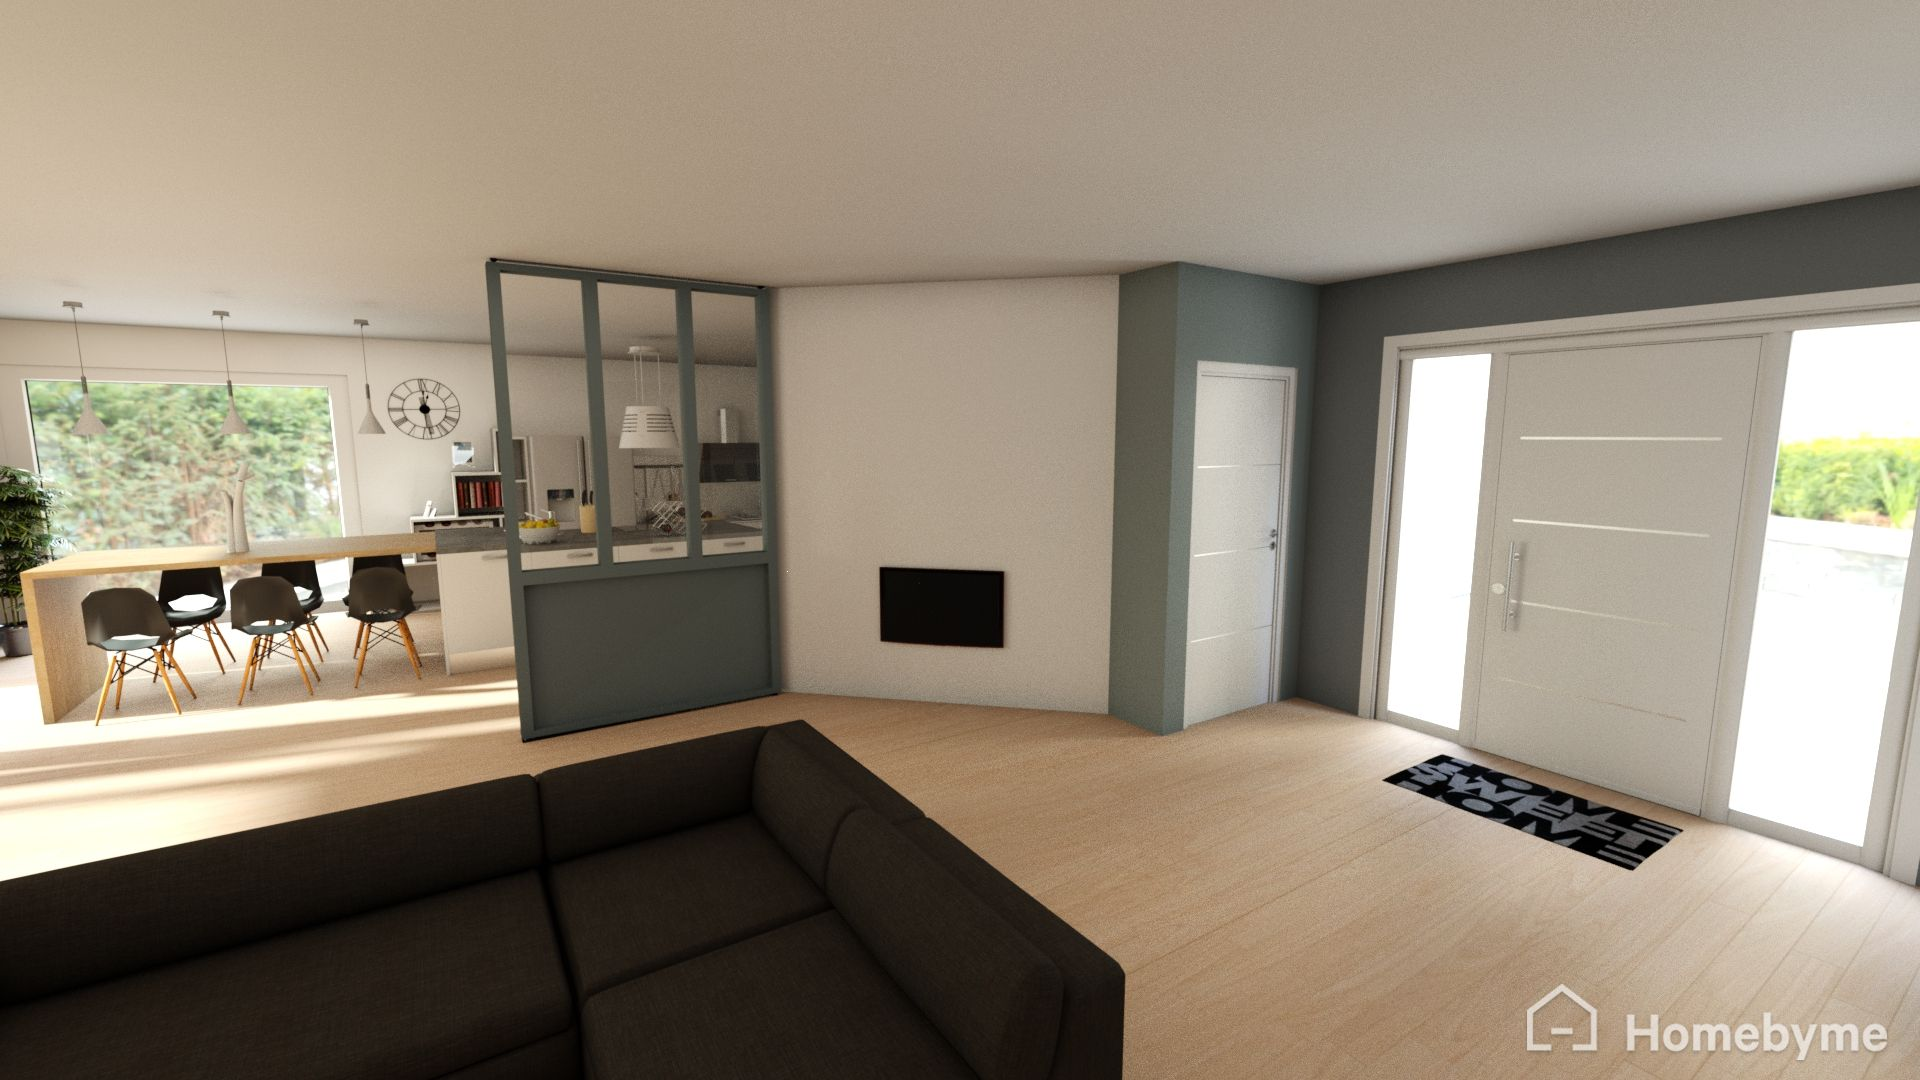 Donner votre avis sur plan d 39 amenagement salon cuisine for Plan 3d amenagement interieur